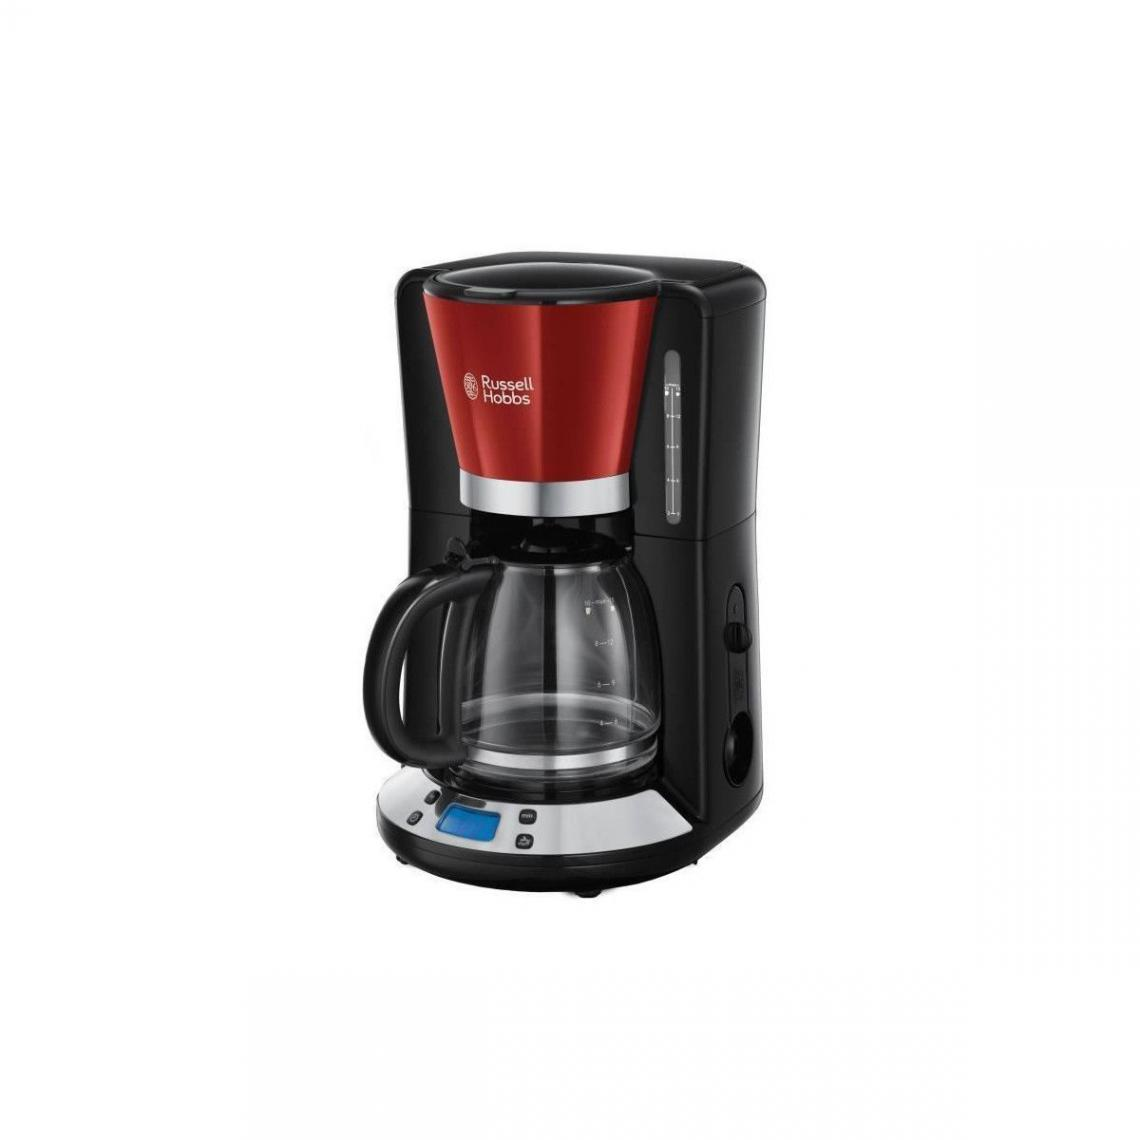 Russell Hobbs Russell Hobbs 24031-56 Cafetiere Filtre Programmable Colours Plus 24h, Digital, Maintien Au Chaud - Rouge